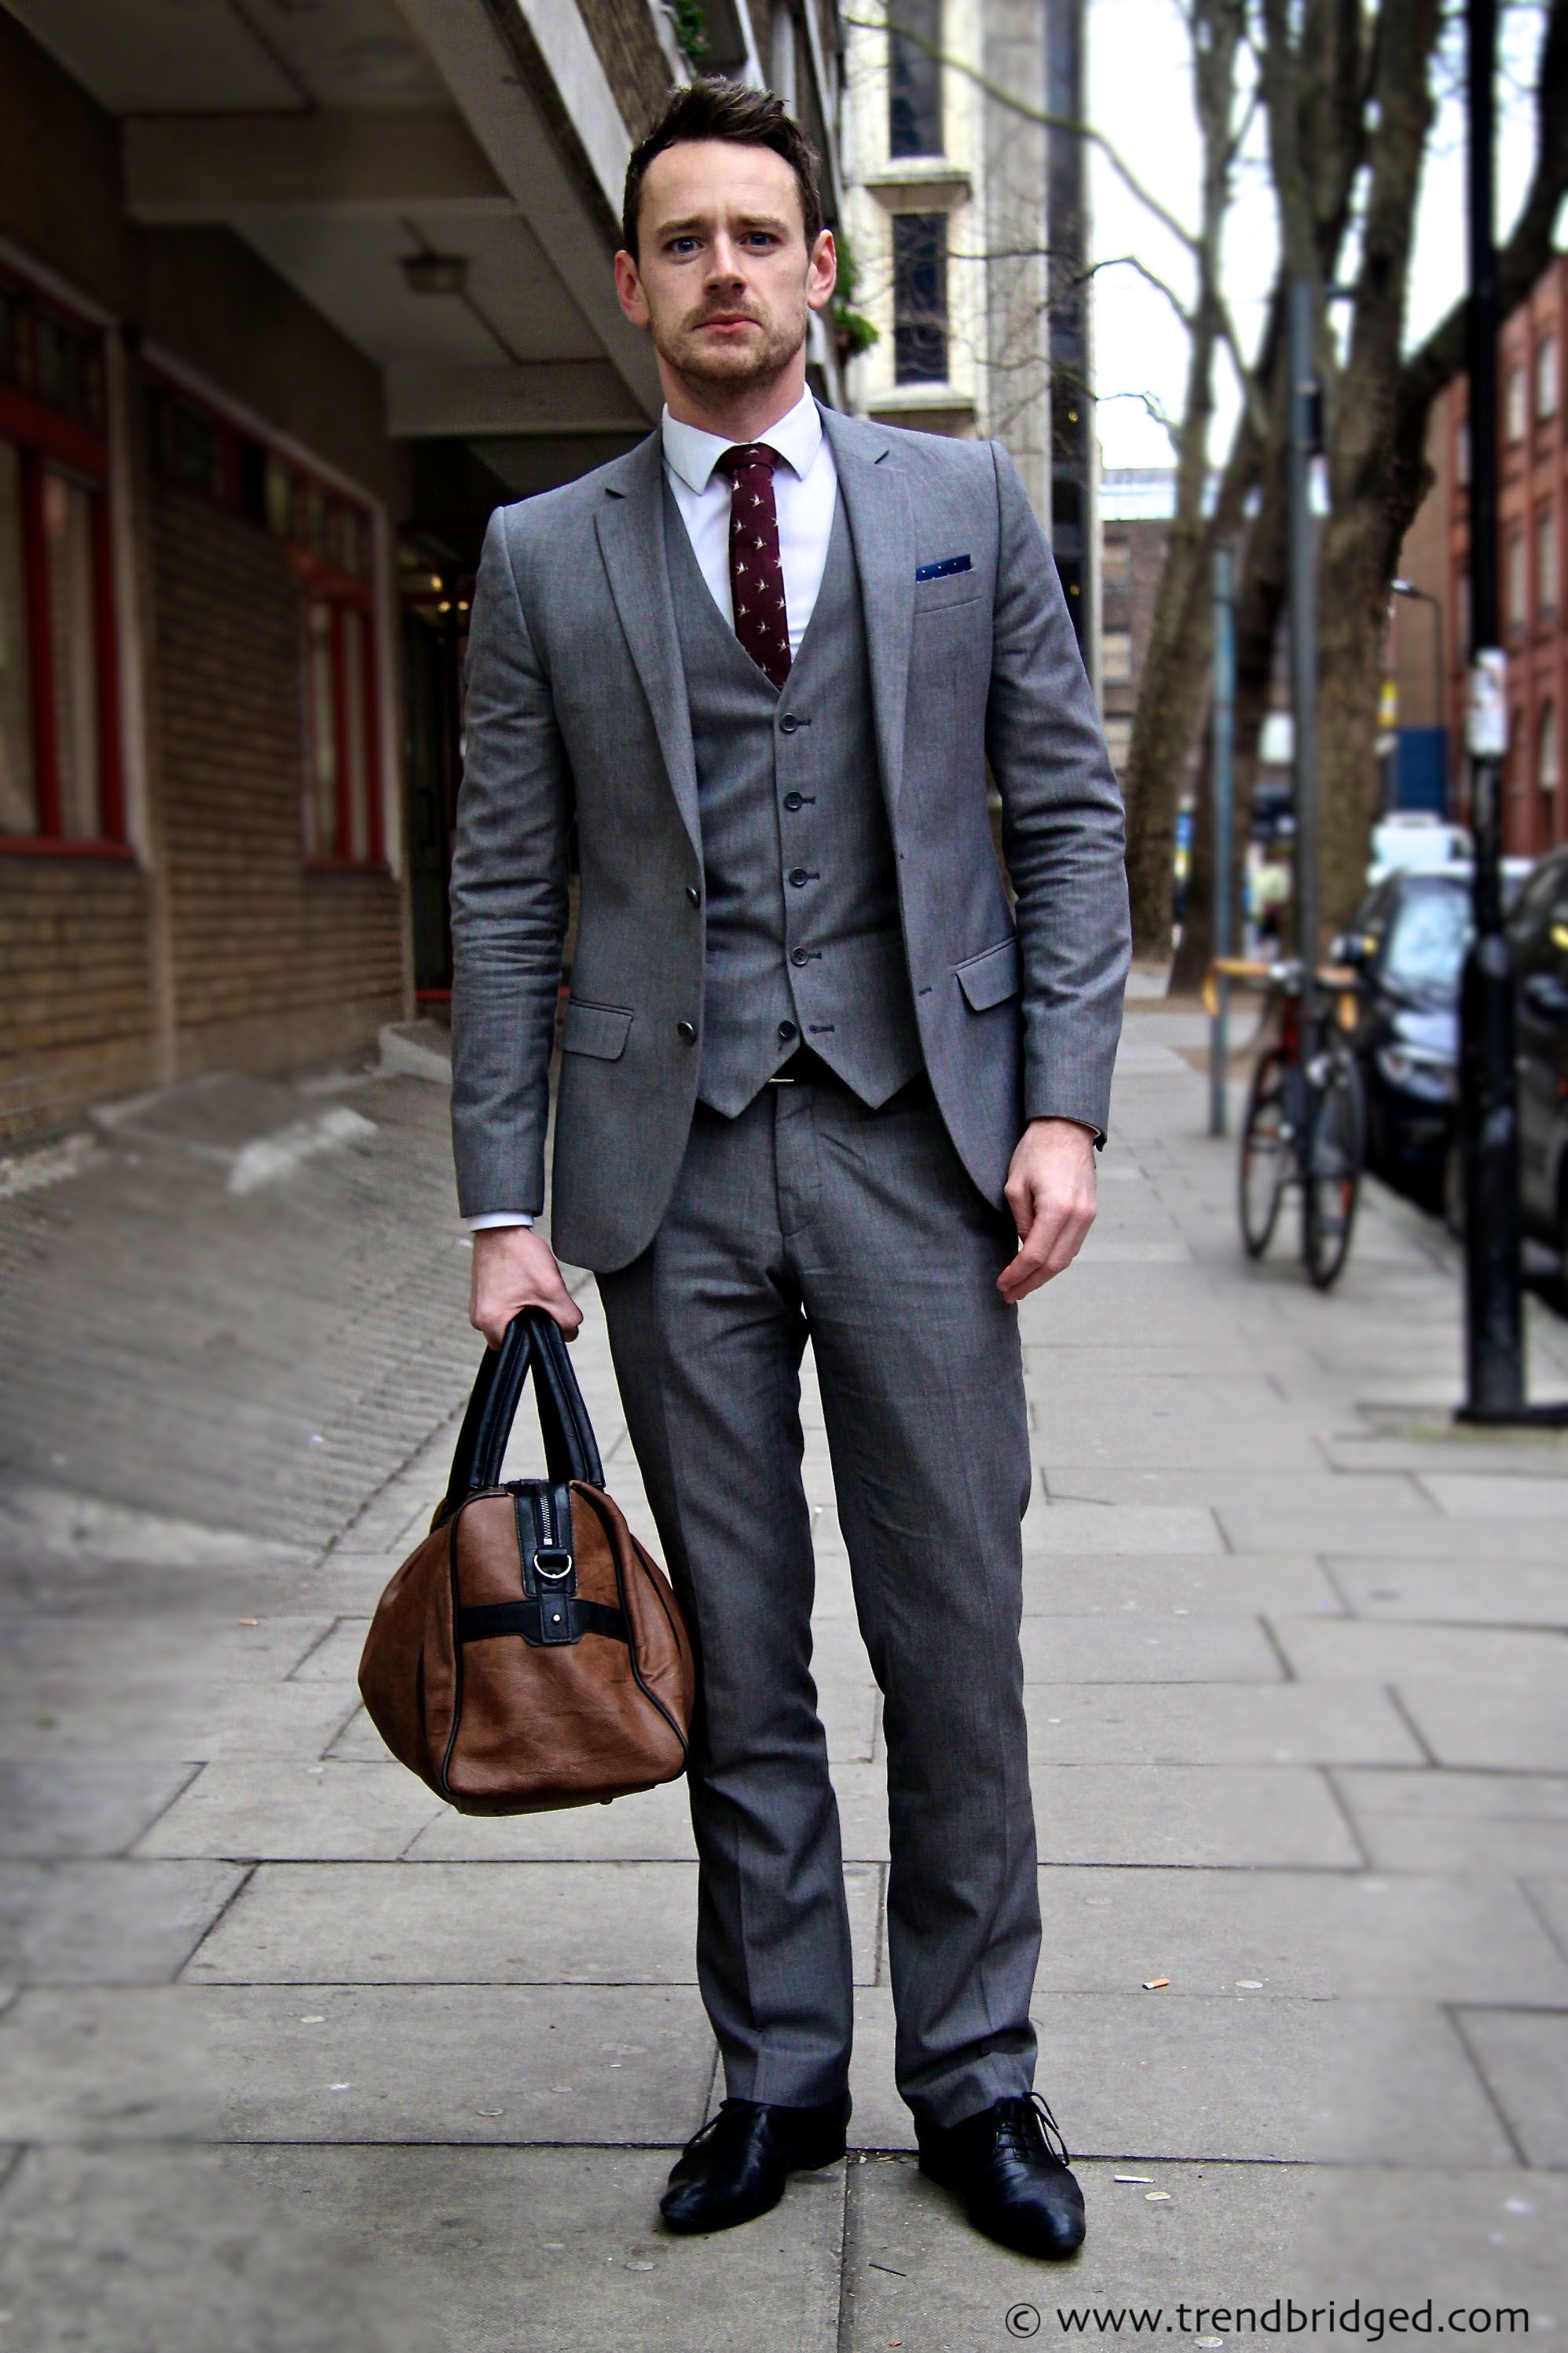 1000  images about Suits on Pinterest | Groomsmen suits, Gray and